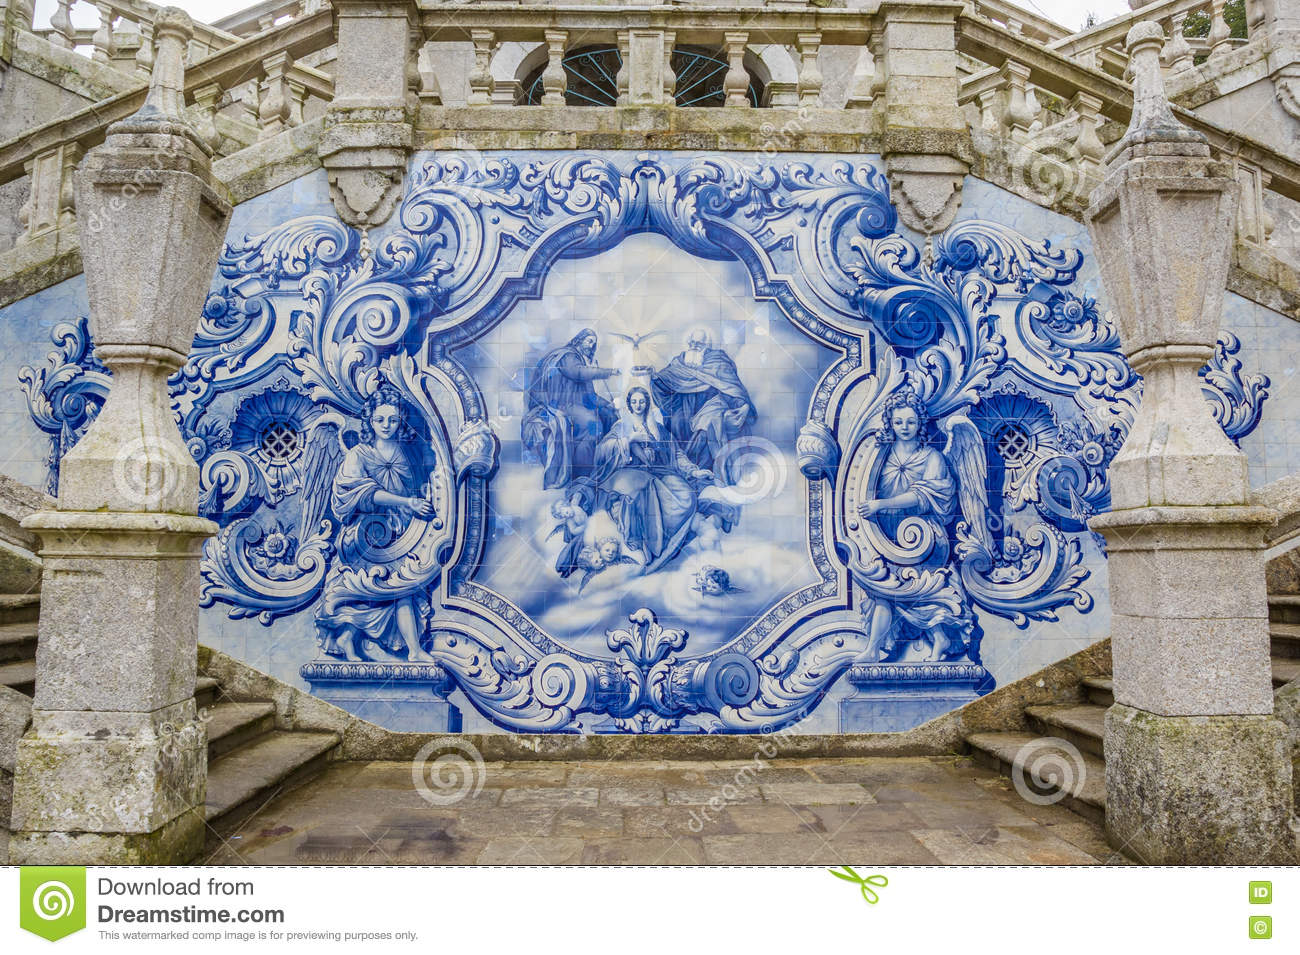 Religious scene in blue azulejos at the Remedios stairs in Lameg